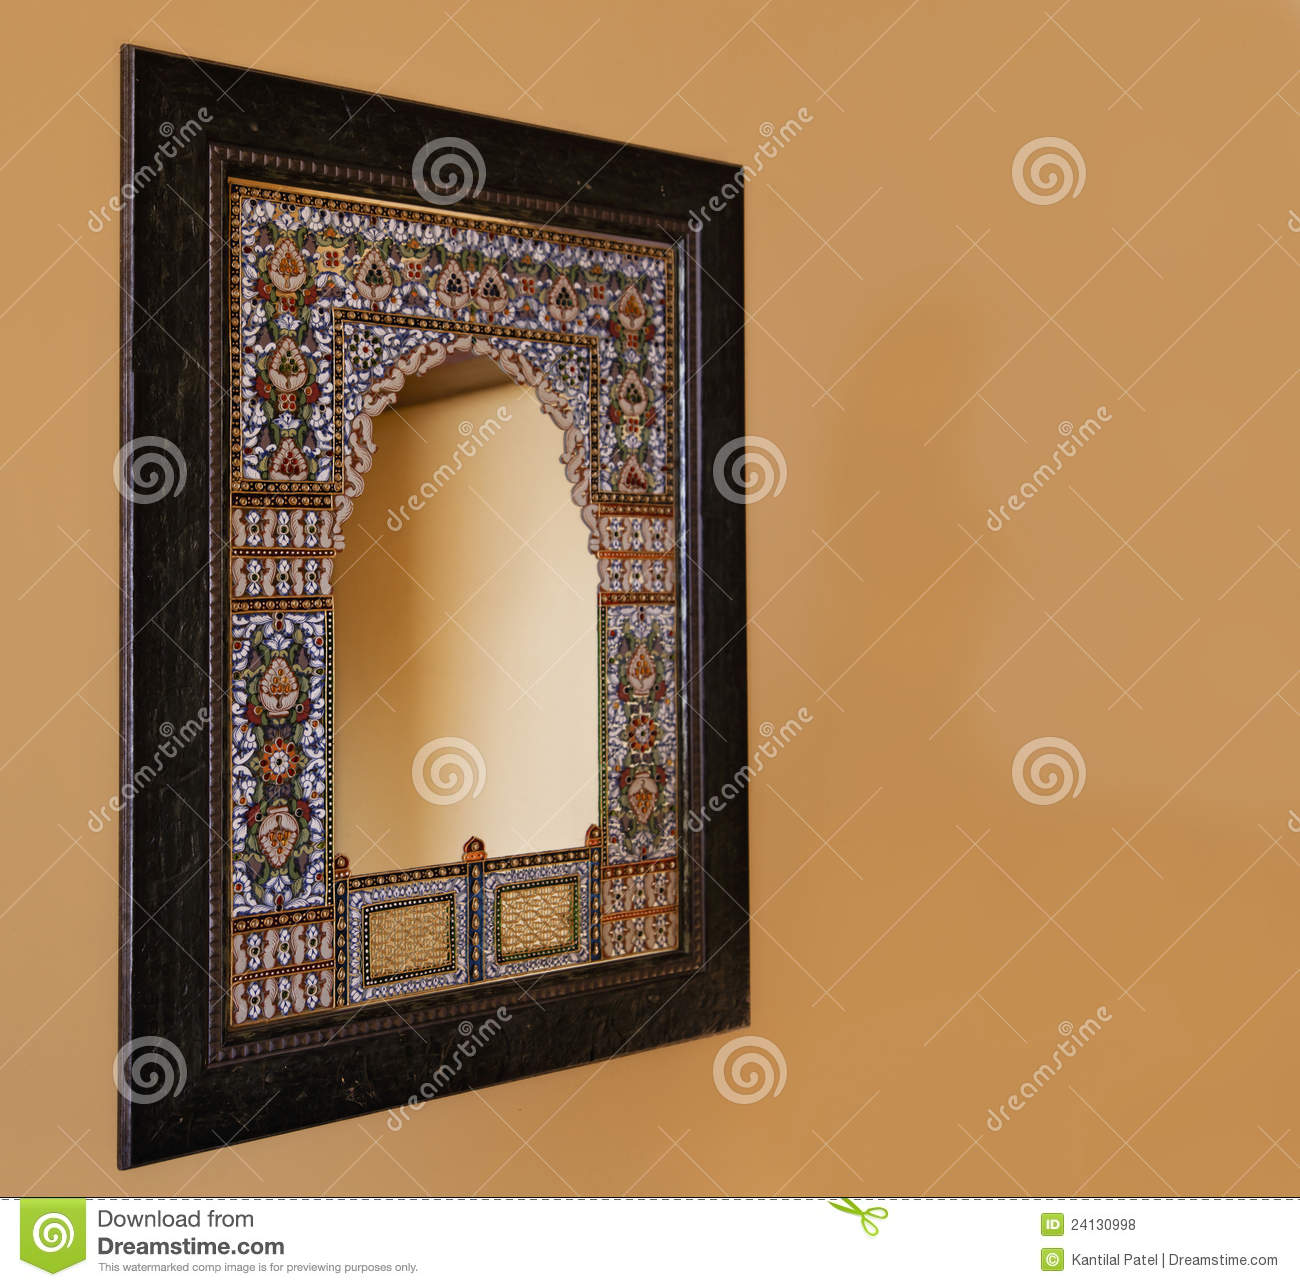 Oak Framed Indigenous Mosiac Mirror India Royalty Free